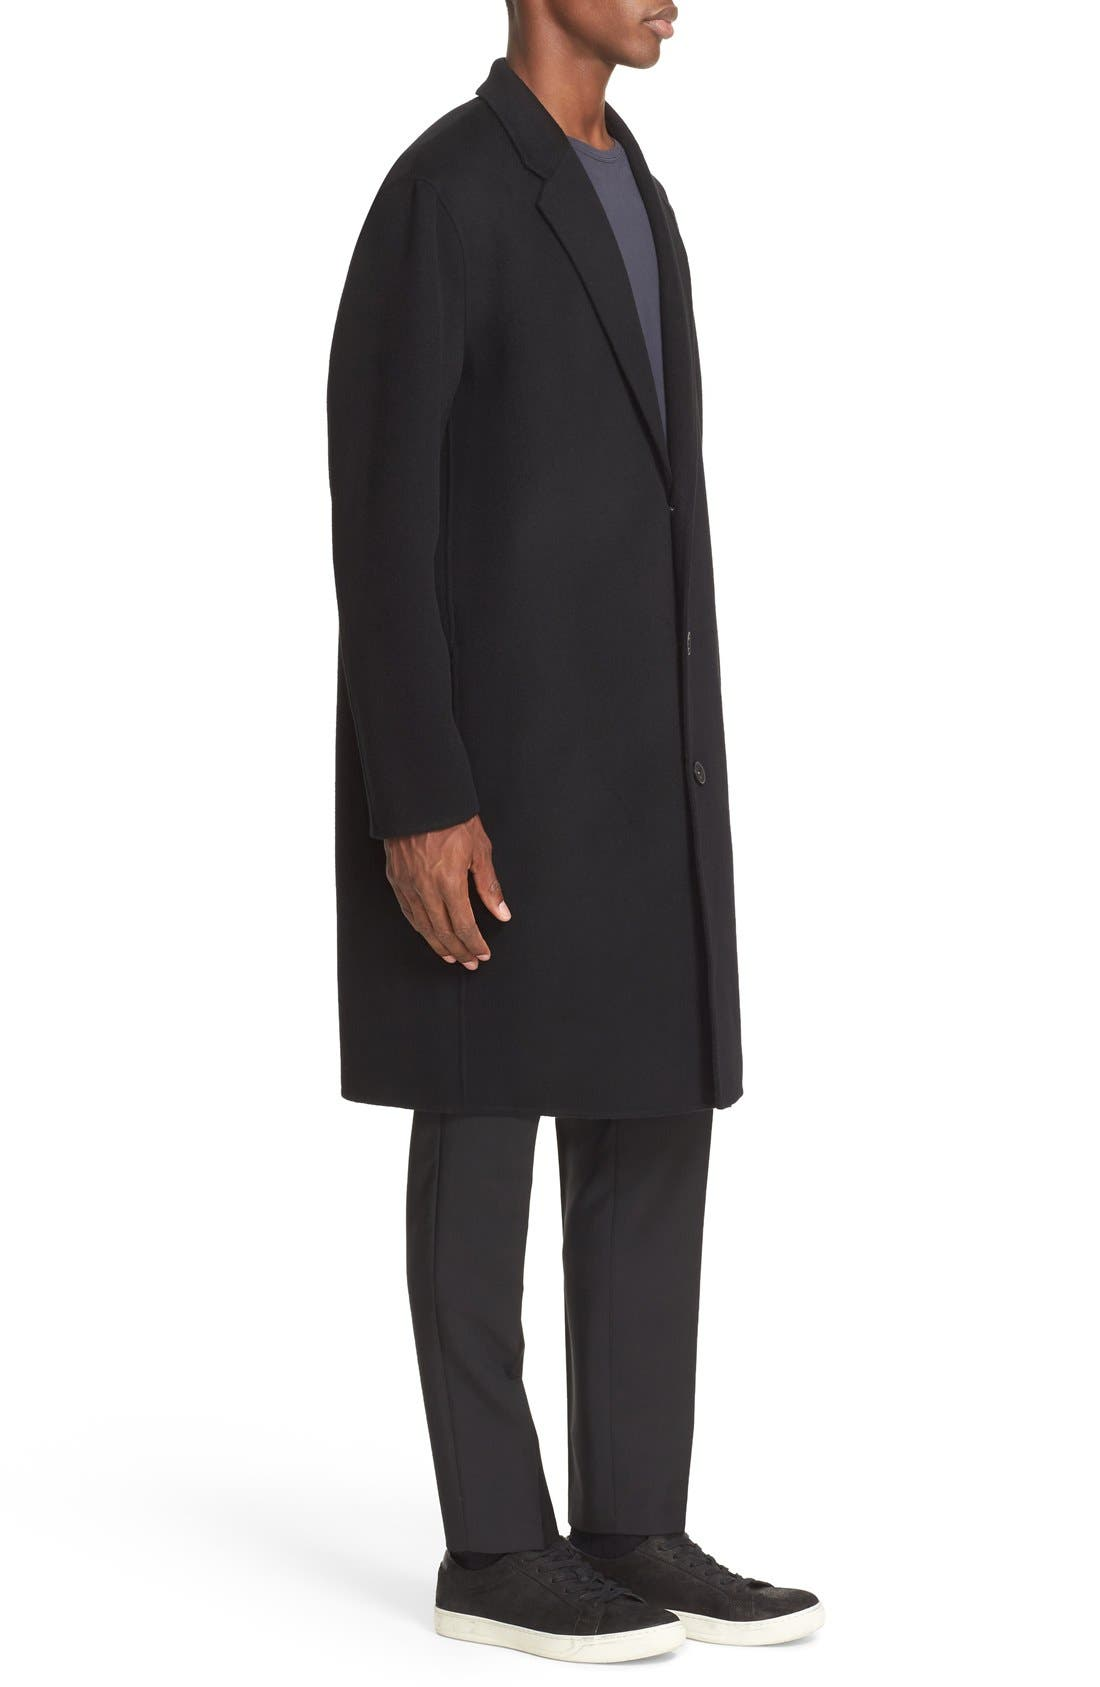 Charles Wool & Cashmere Coat,                             Alternate thumbnail 3, color,                             001